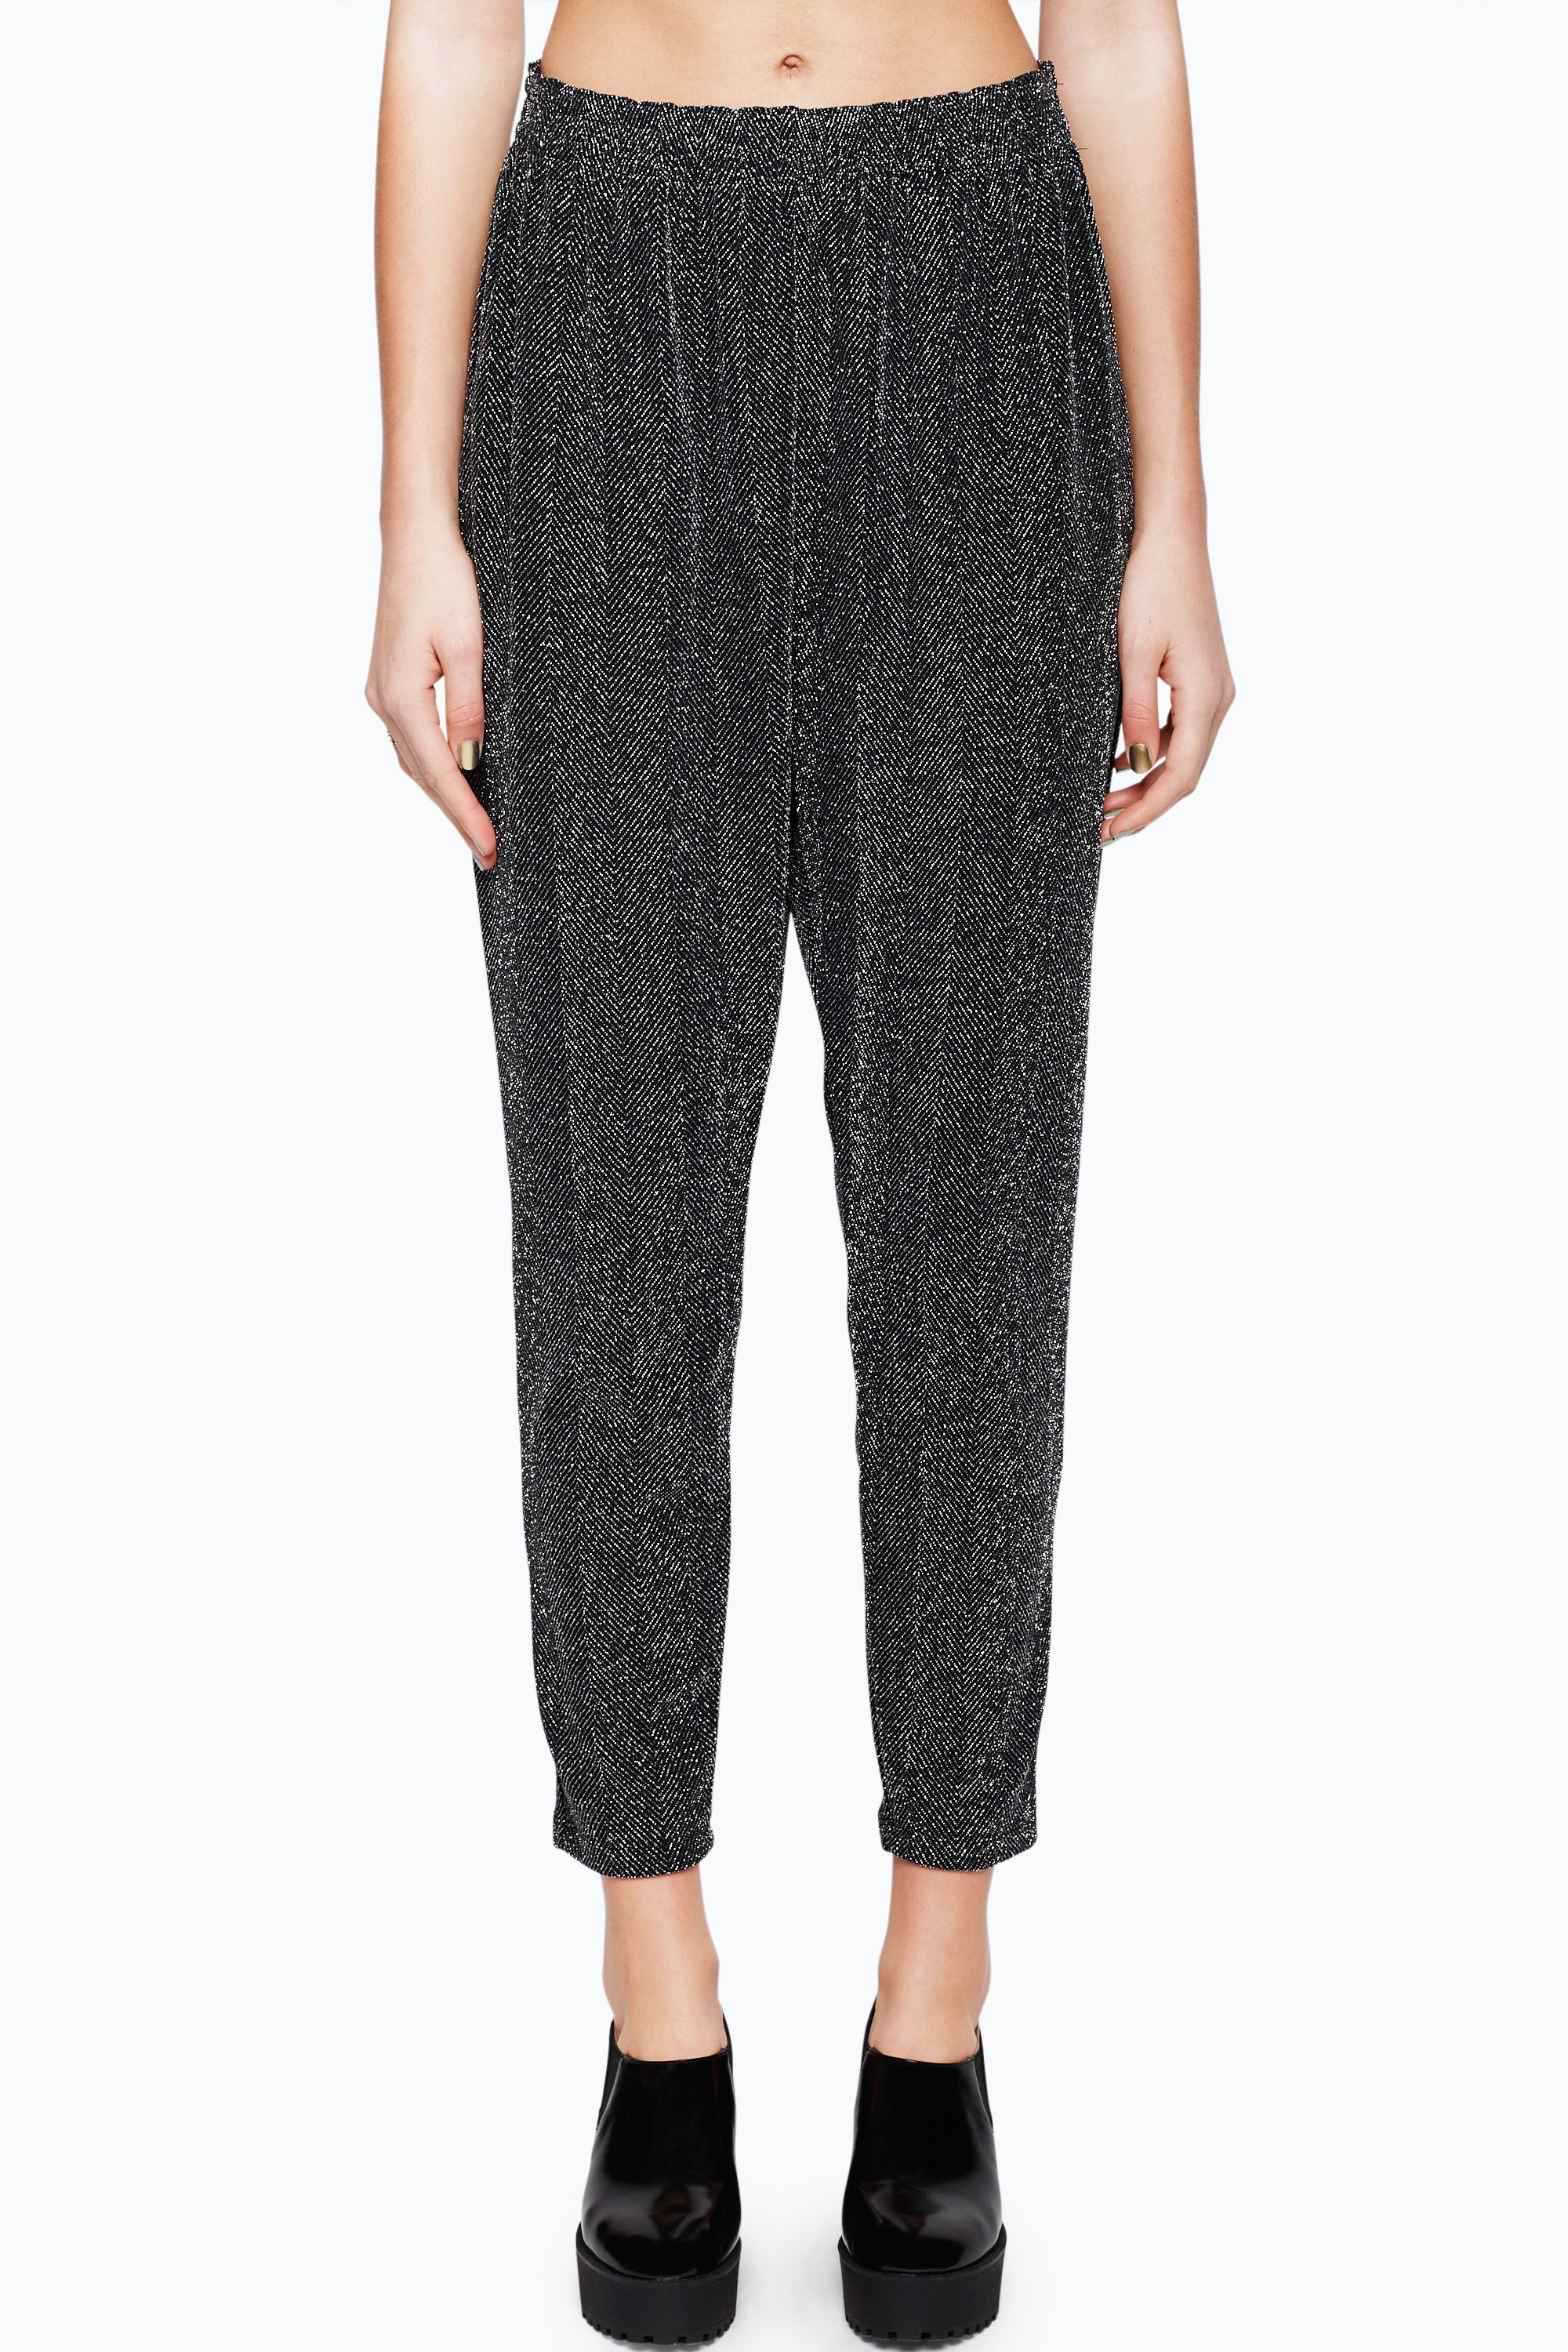 Monki | Trousers | Rita trouser